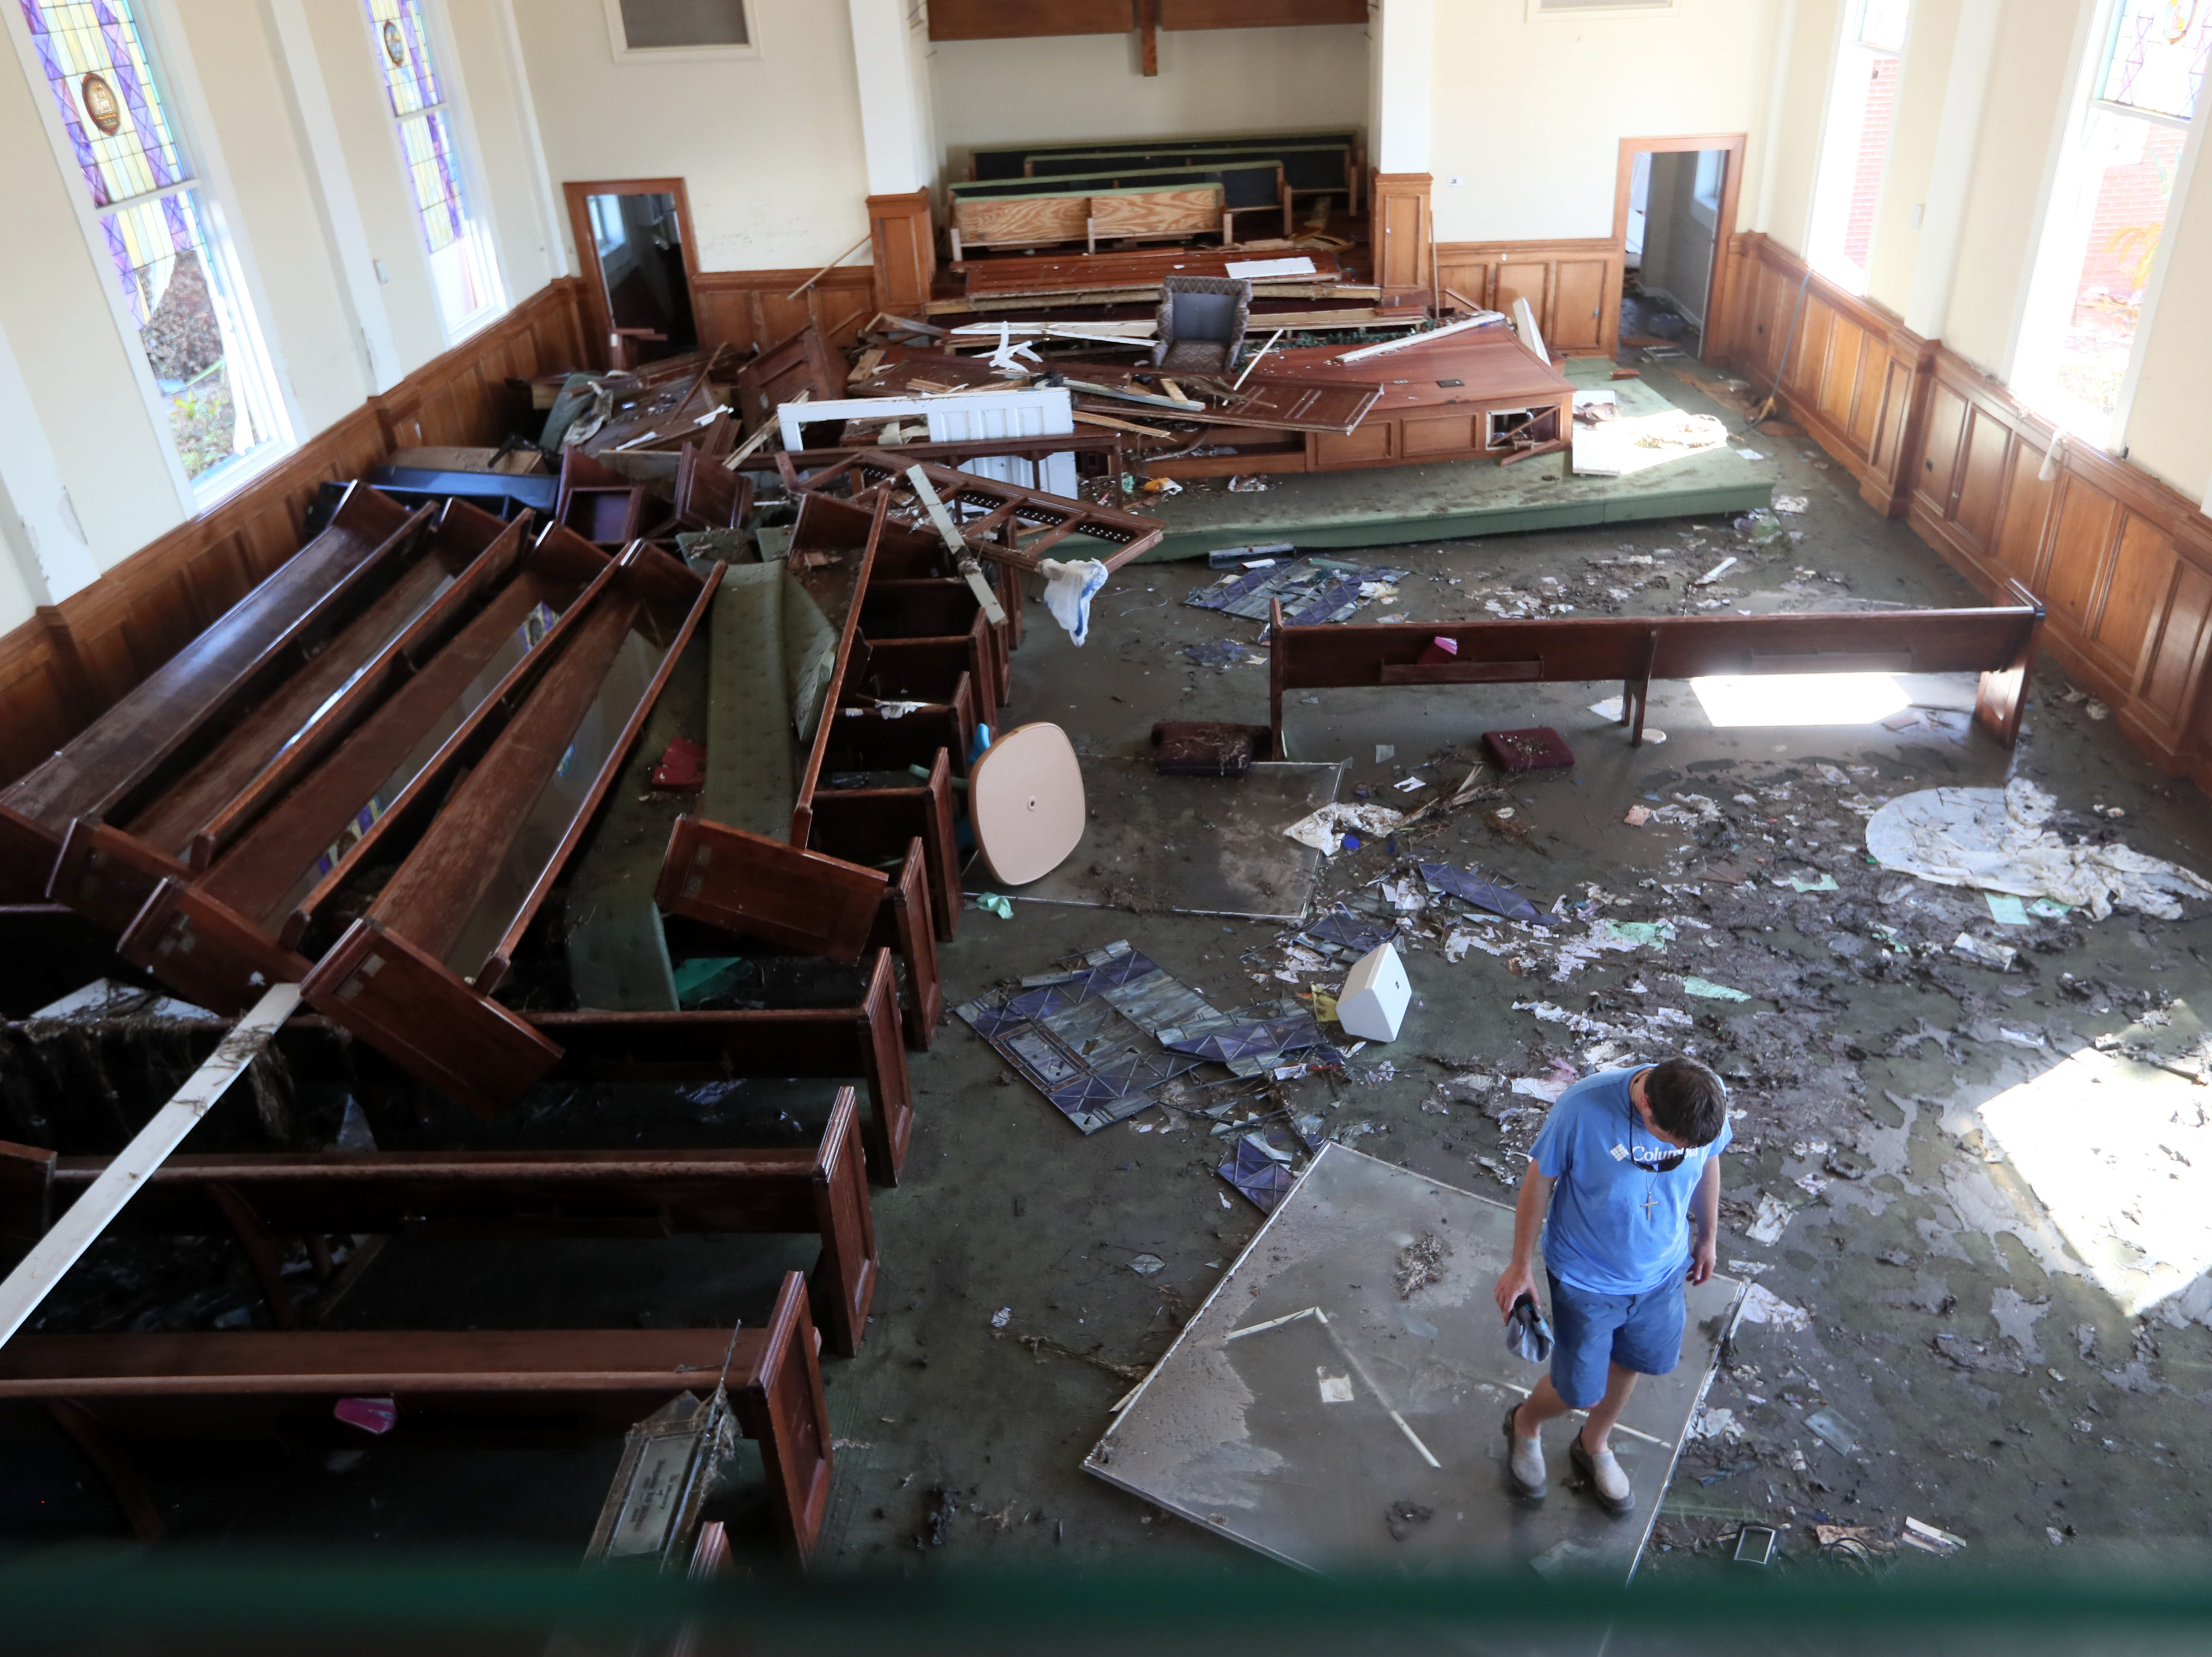 Pastor Geoffrey Lentz walks through the scattered remains of his congregation's First United Methodist Church in Port St. Joe on Tuesday, Oct. 16, 2018. The church was battered by Hurricane Michael, leaving both the sanctuary and the pastor's house in shambles.